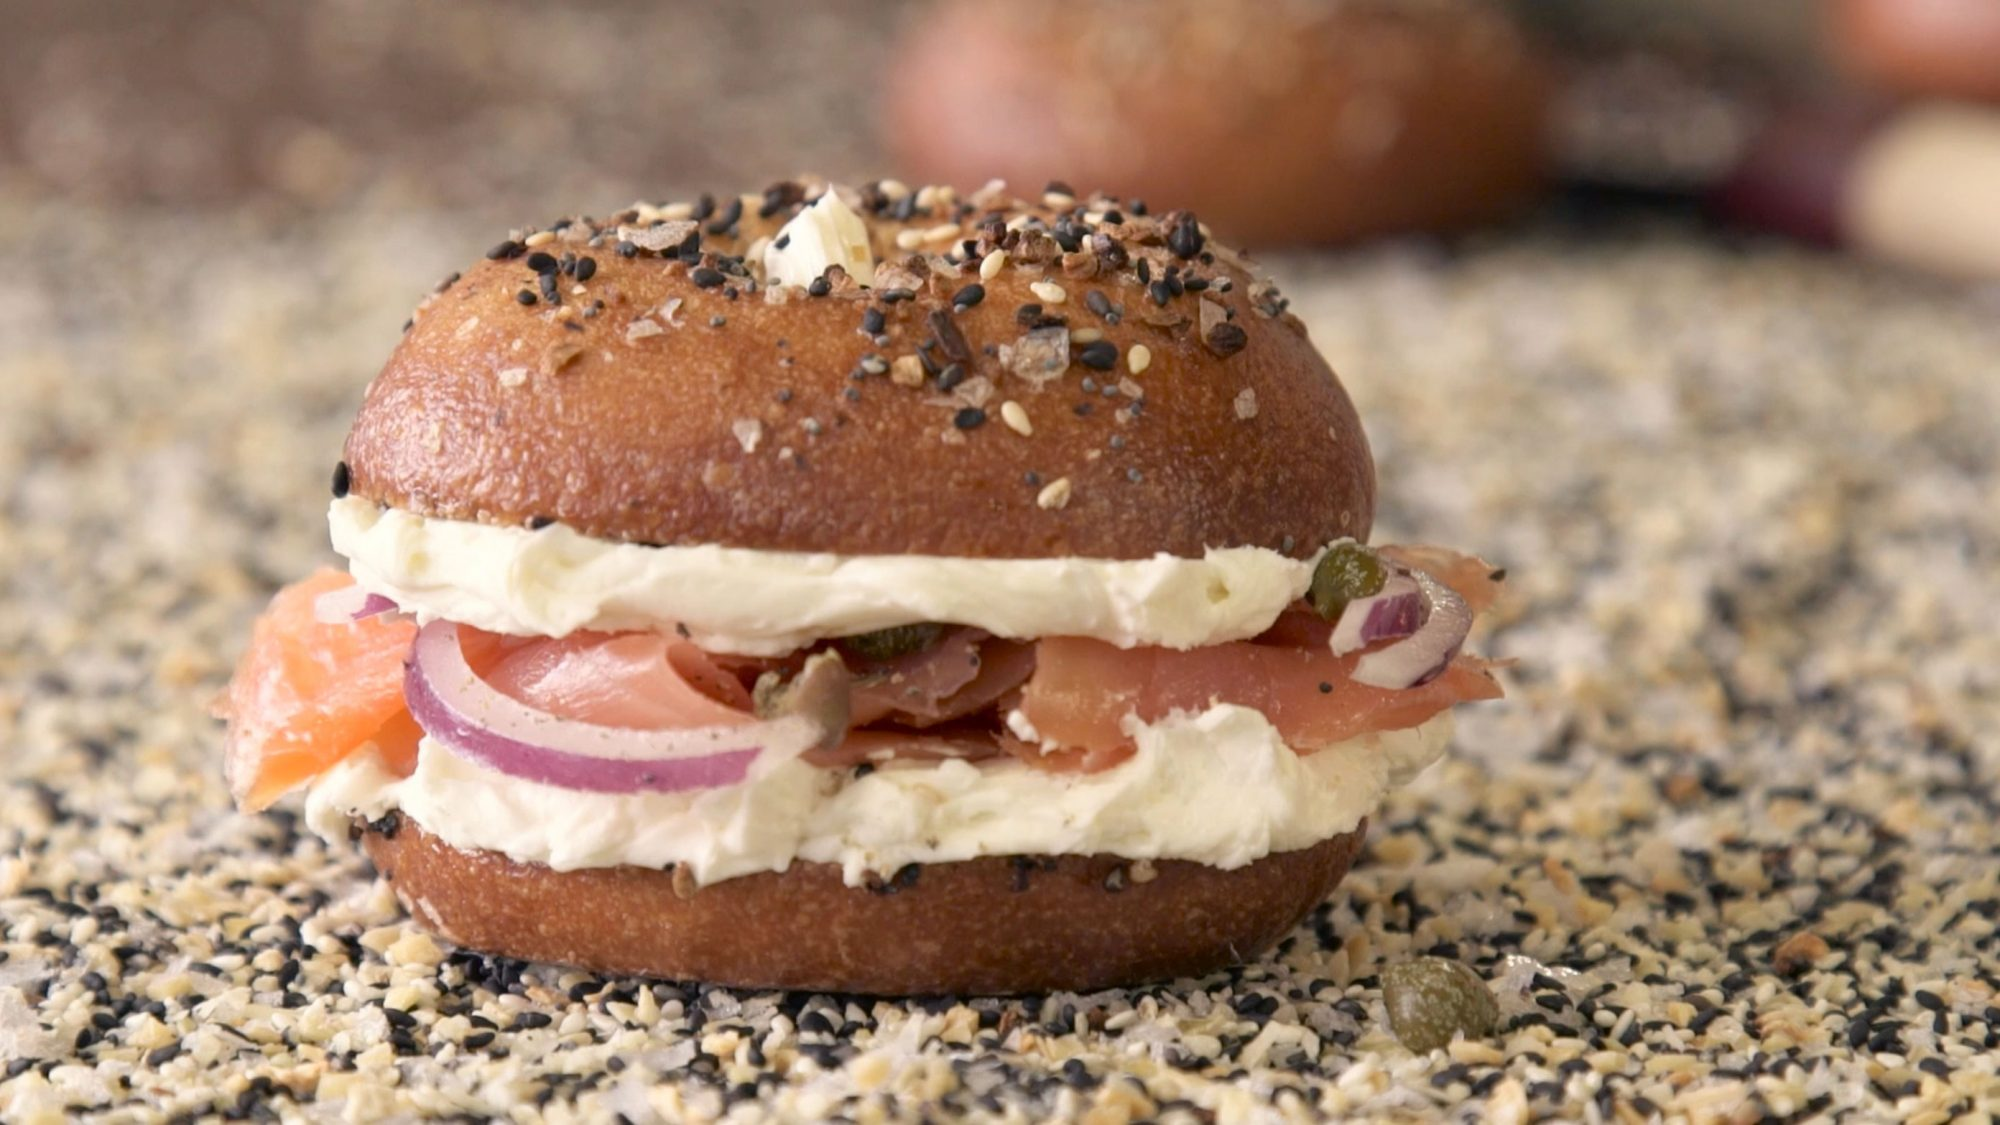 Everything-Bagel-ChefSteps-FT